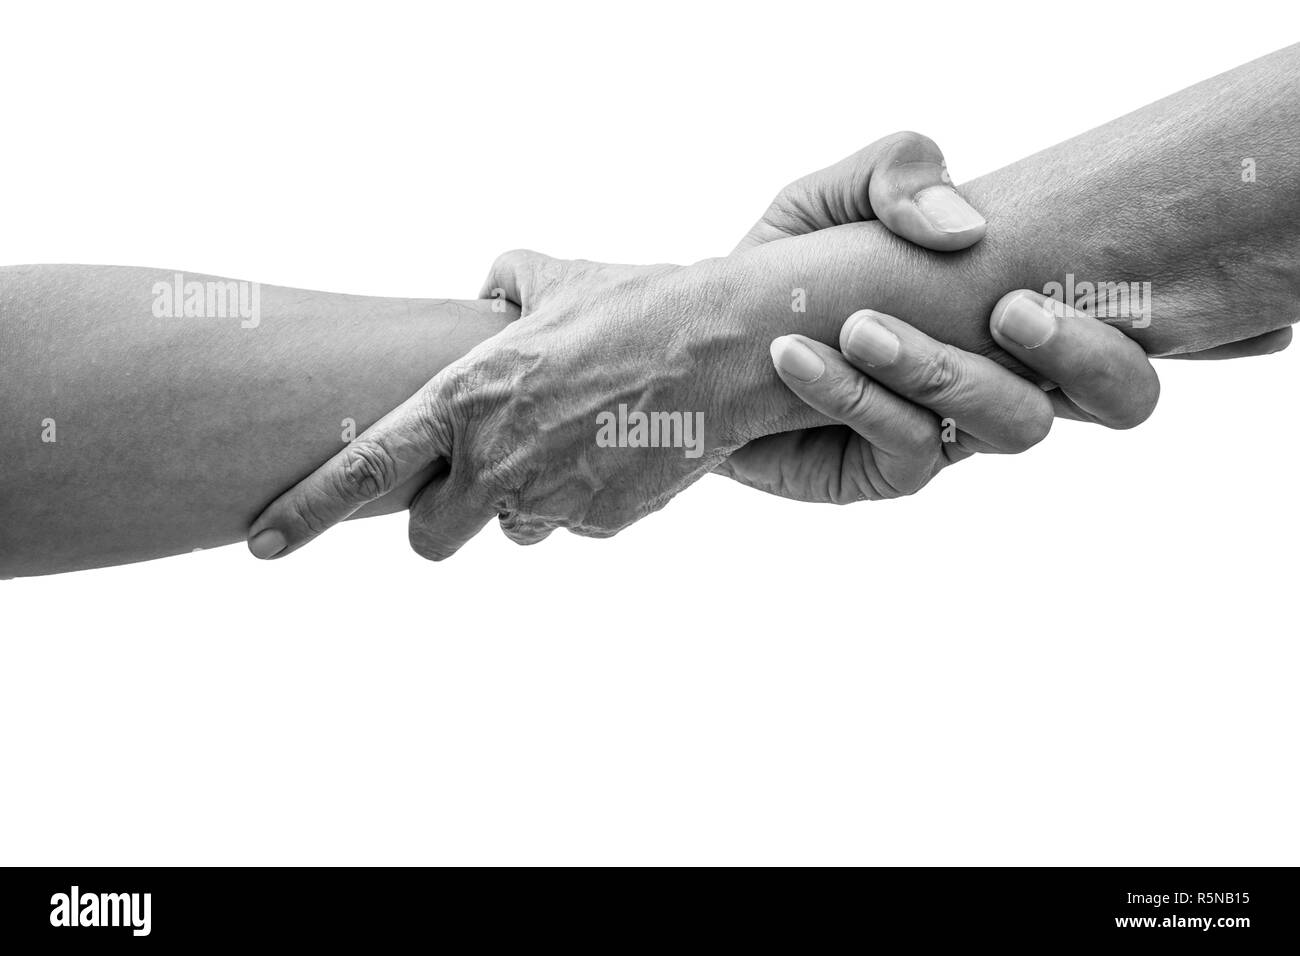 Dramatic black and white help hands holding together representing friendship, partnership, help and hope, donation, assistance. - Stock Image